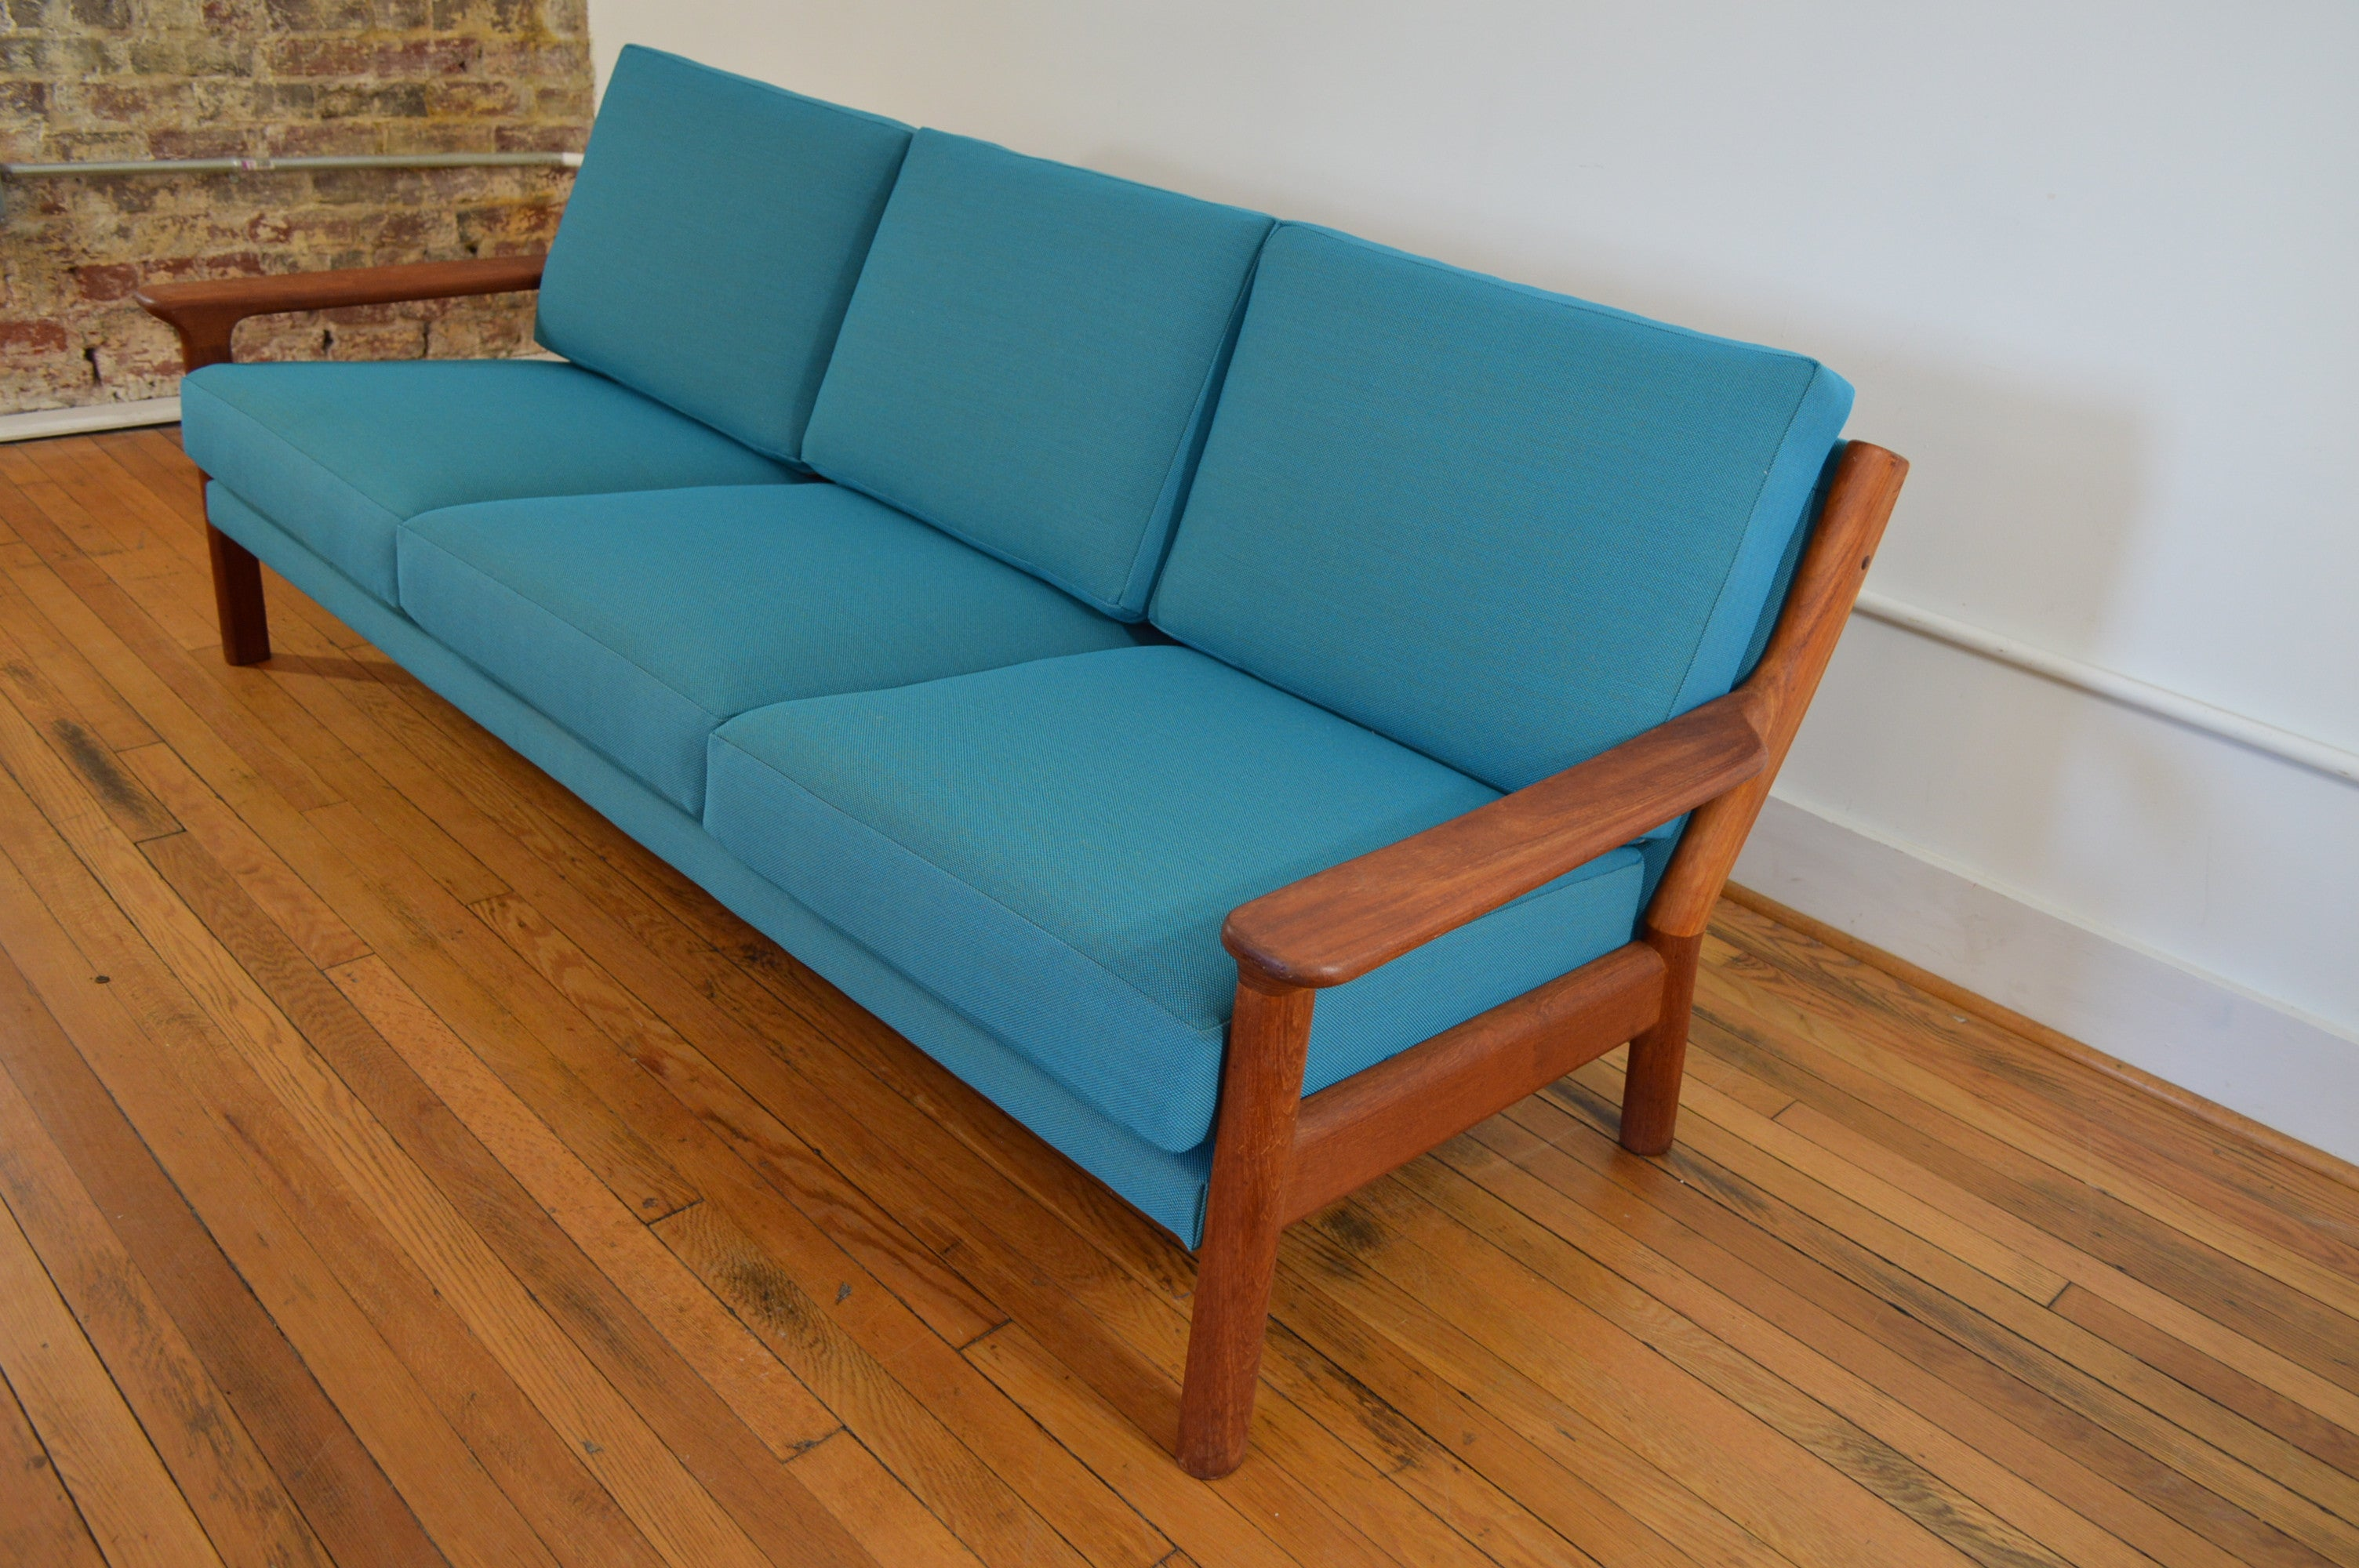 Danish teak sofa by juul kristensen for glostrup for Danish design sofa